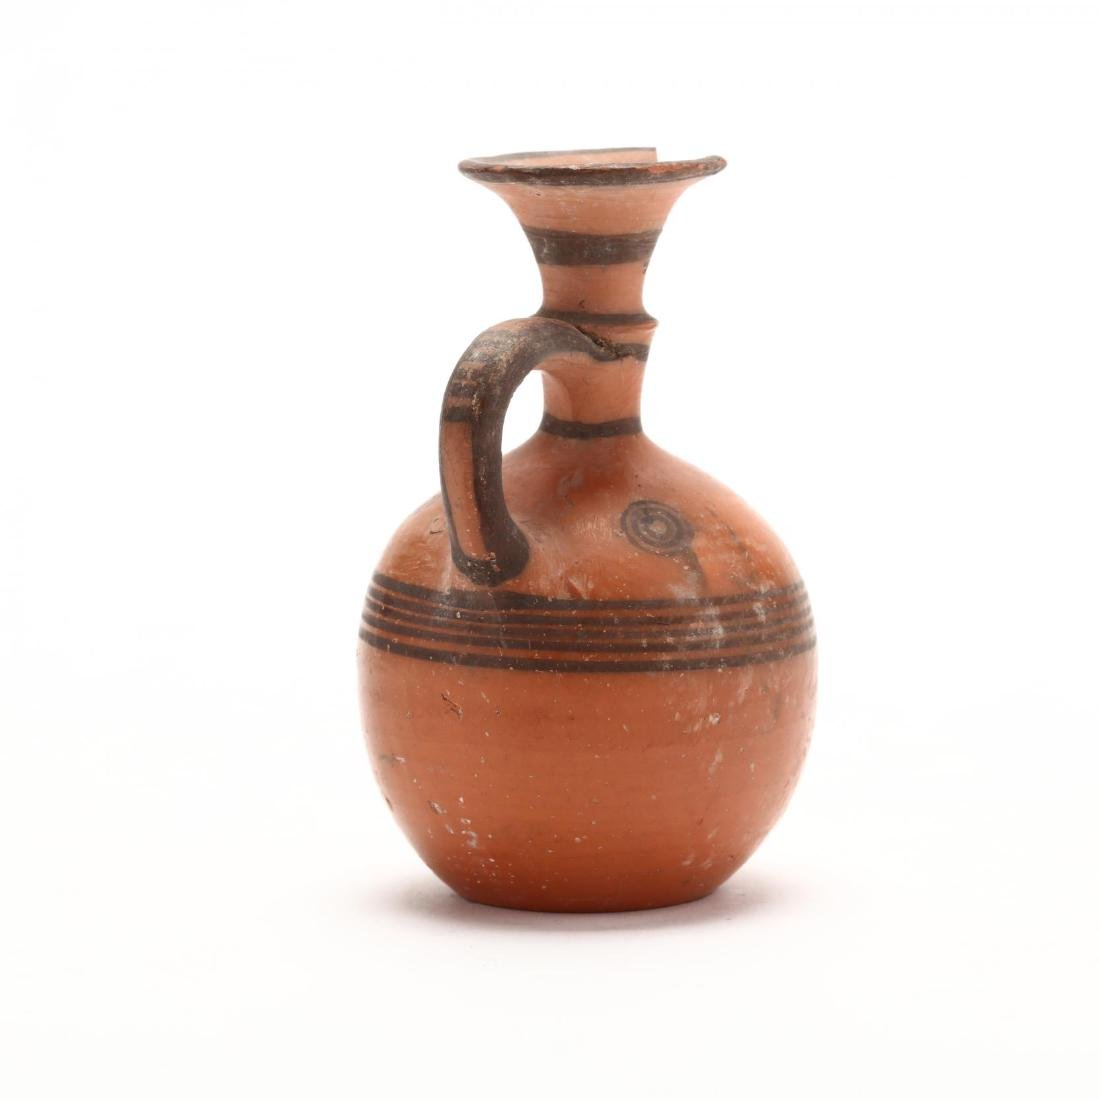 Cypro-Archaic Red Ware Juglet - 4